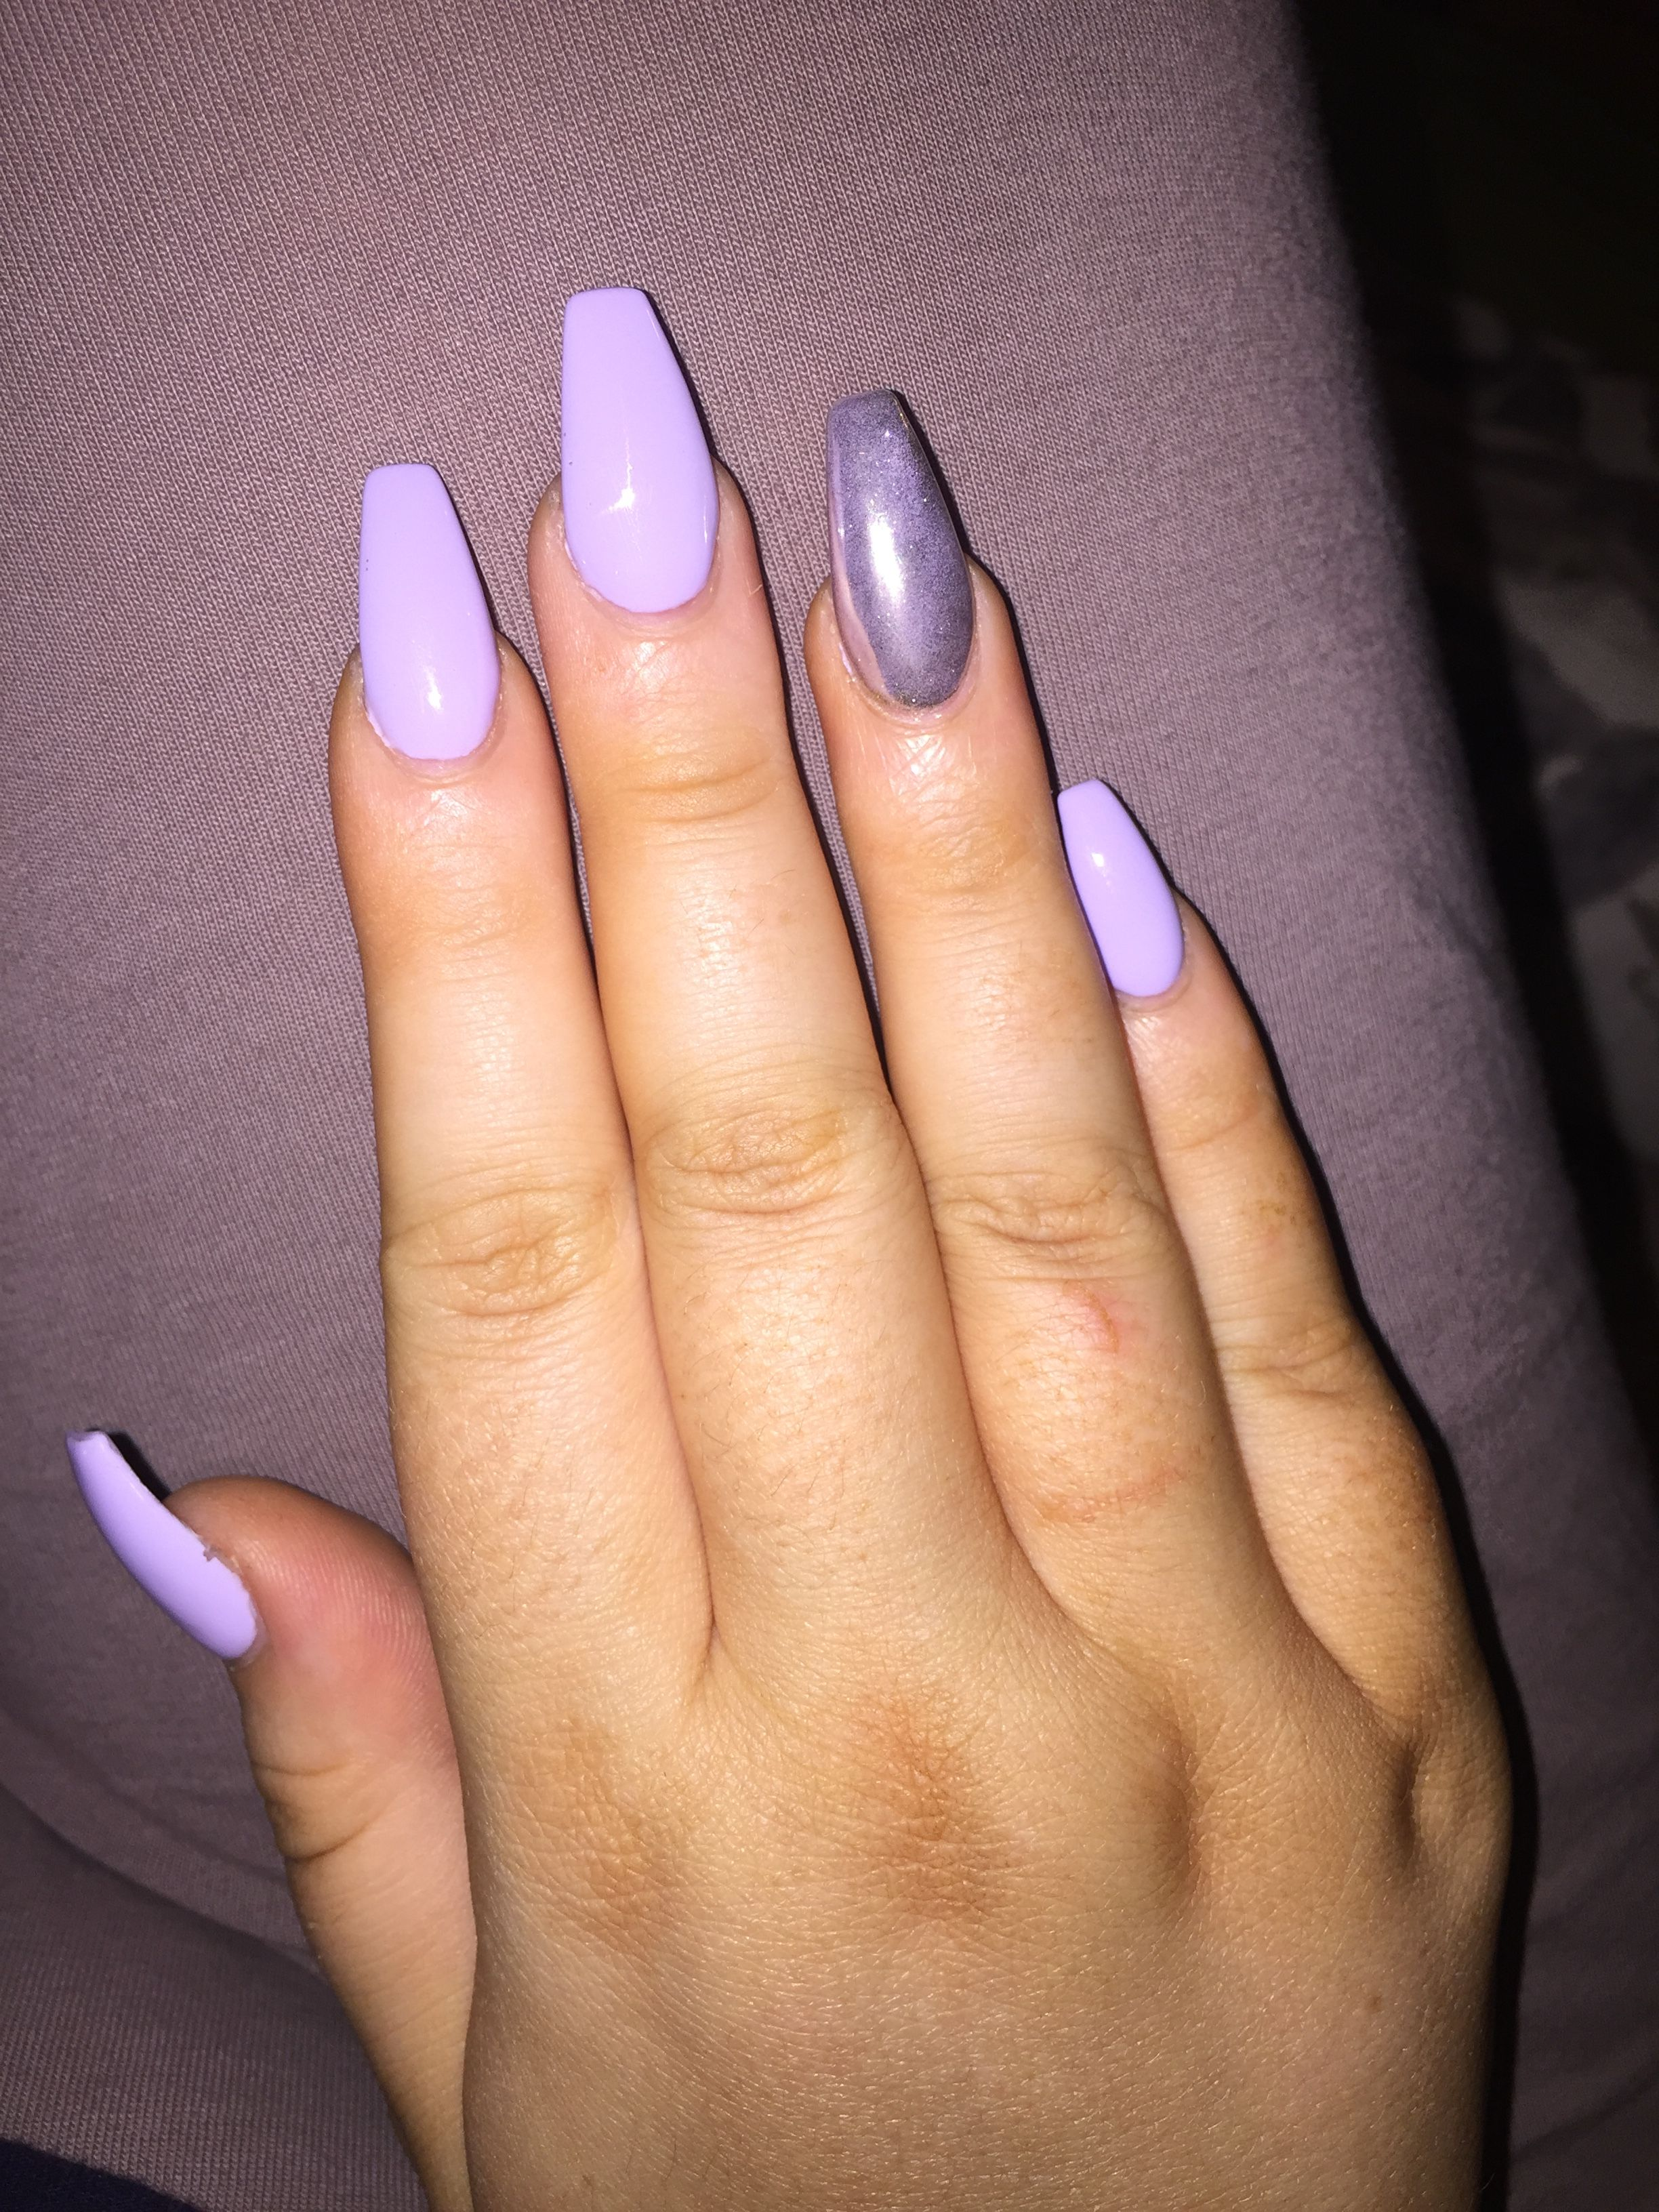 Lilac Chrome Summer Acrylics With Images Lilac Nails Gel